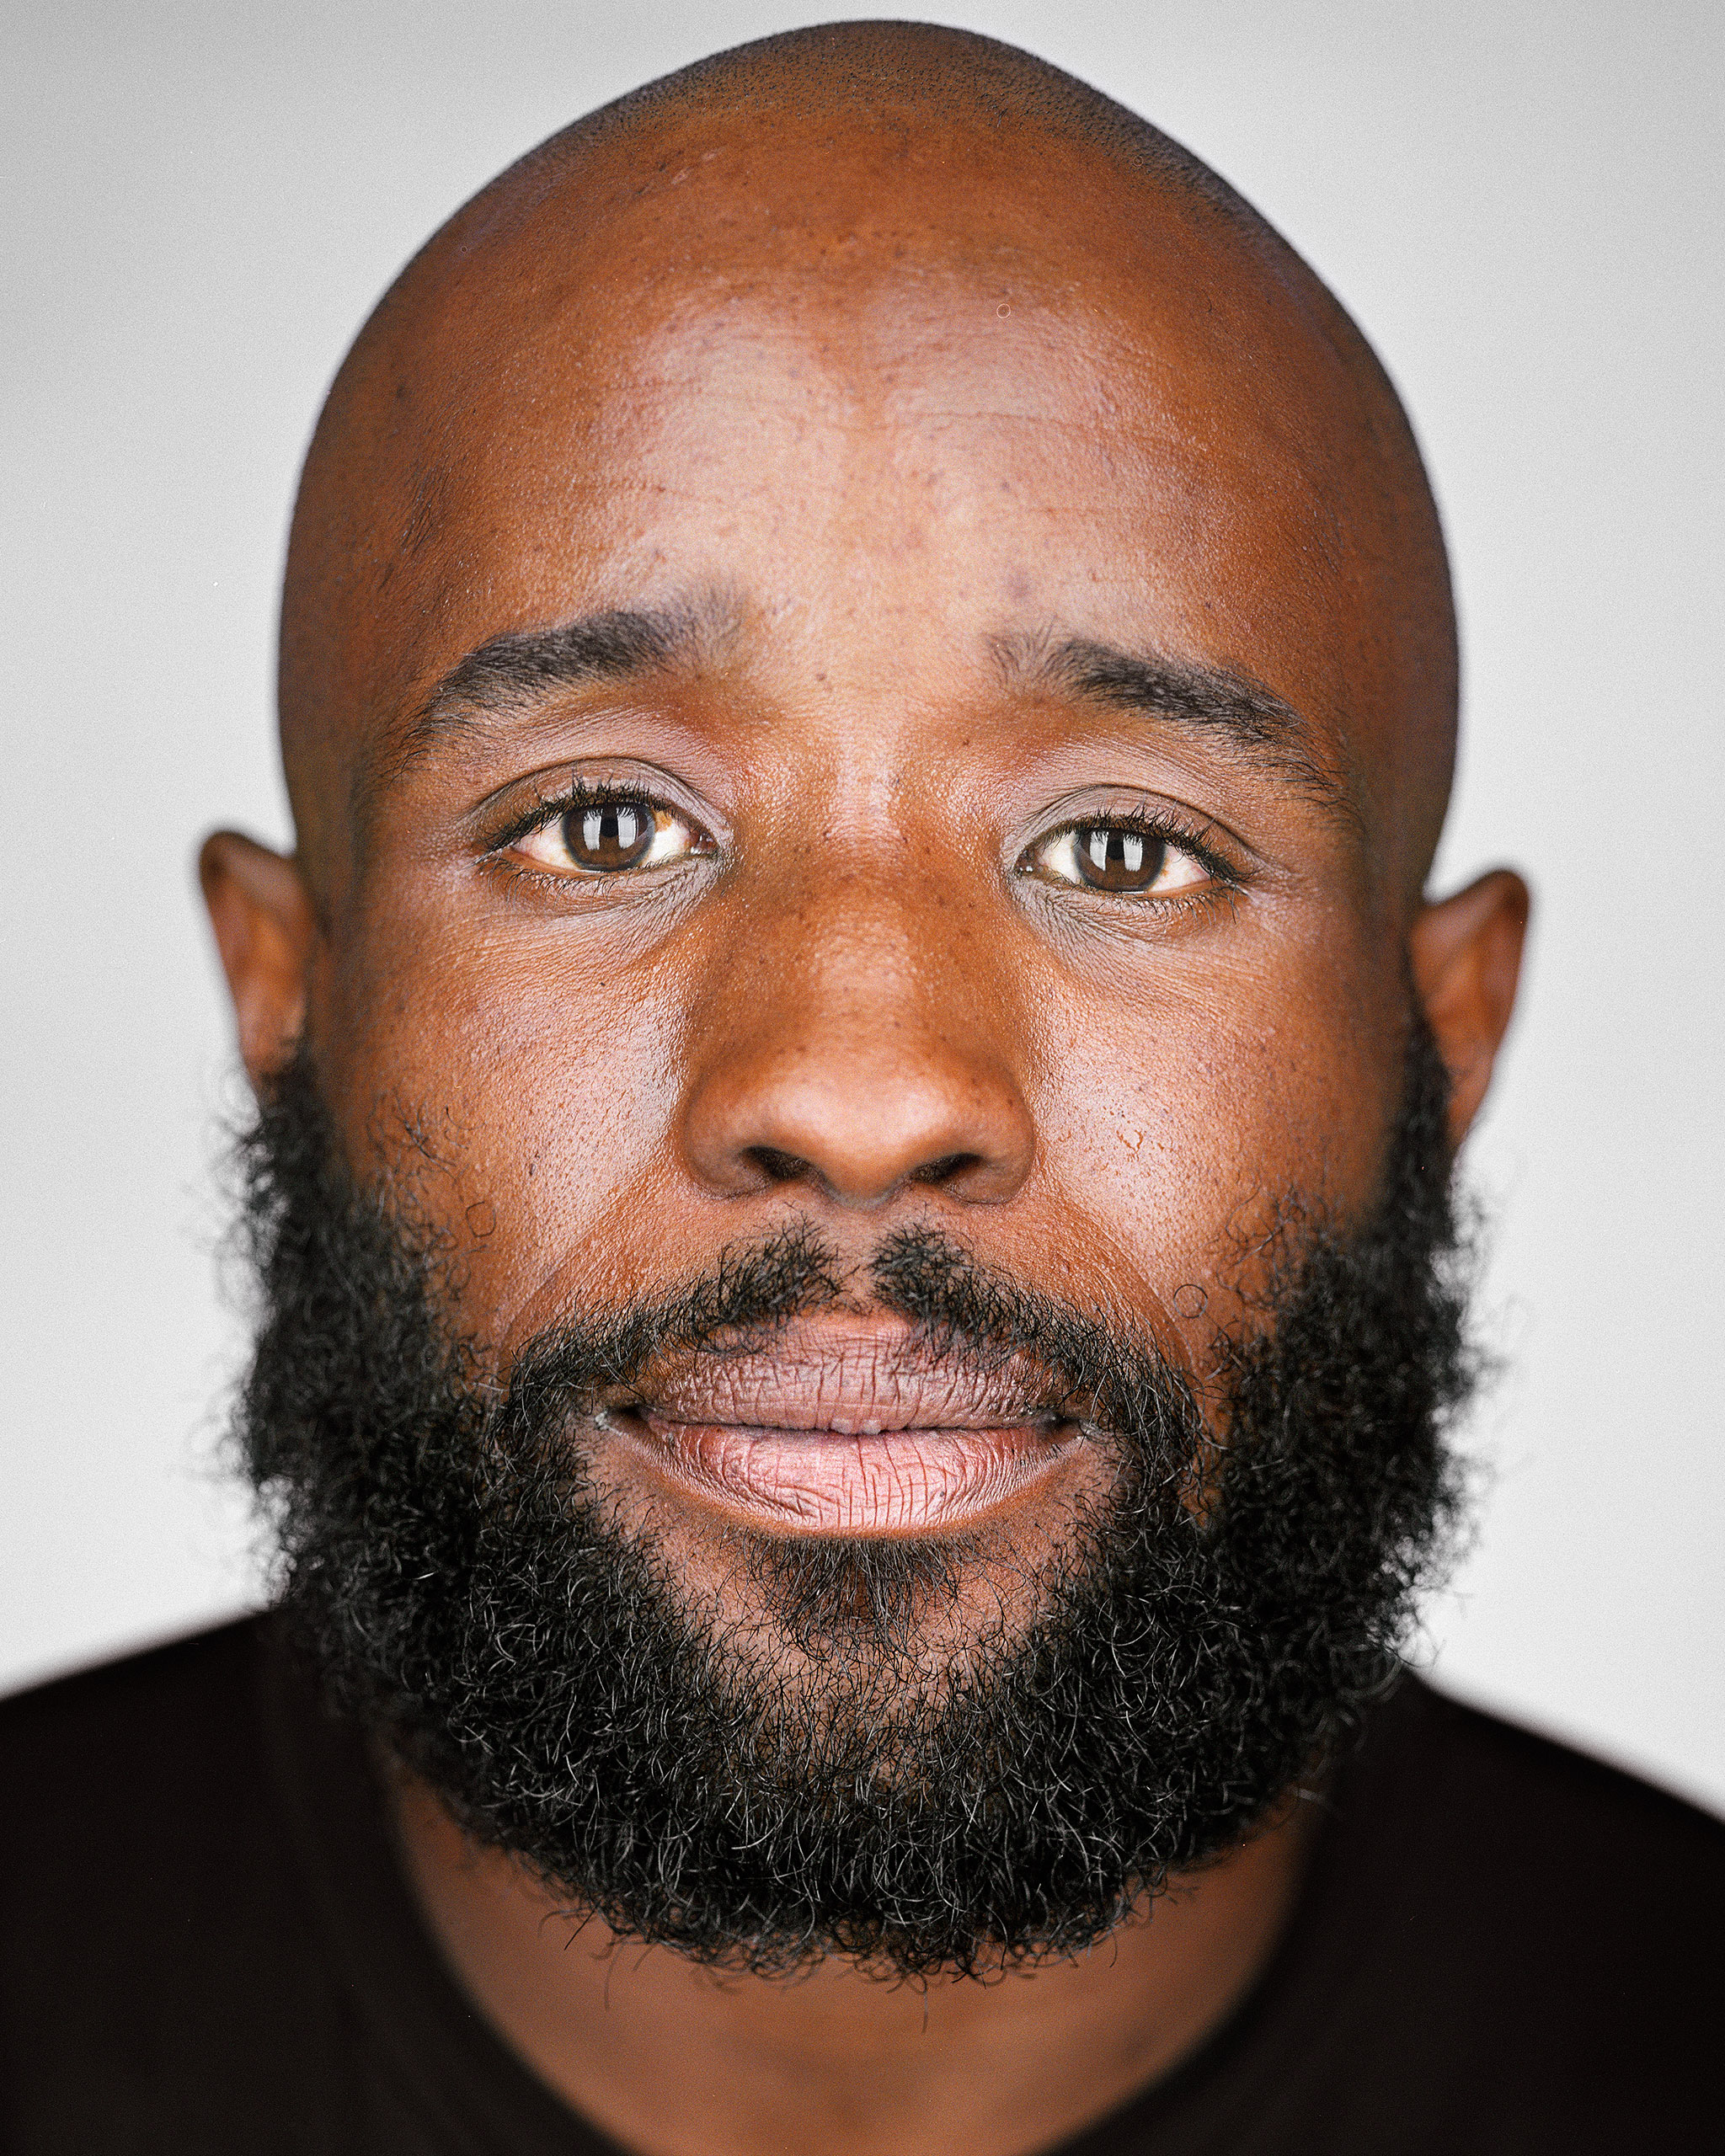 """Martin:  How long have you been out here on the streets?""""                               Markeith: """"I've been out here since 2004. I was in tenth grade. My mother passed away and left me kinda...My dad's a crack head so I didn't really have too much family. I'm from the Highlands. I been out here for quite awhile. But I try to be upbeat about it.""""                               Martin: """"You quit school at grade ten then?""""                               Markeith: """"Yeah.""""                               Martin: """"Your mom must have been really young when she passed away, man.""""                               Markeith: """"Yeah, she was late thirties.""""                                                              Martin: """"Drug related?""""                                Markeith: """"She was shot in the spinal cord. Her boyfriend was selling drugs. They came lookin' for him and killed my mom. That's why I'm trying to keep myself away from all of that.""""                                                               —Markeith Watson, Oct. 27, 2015."""